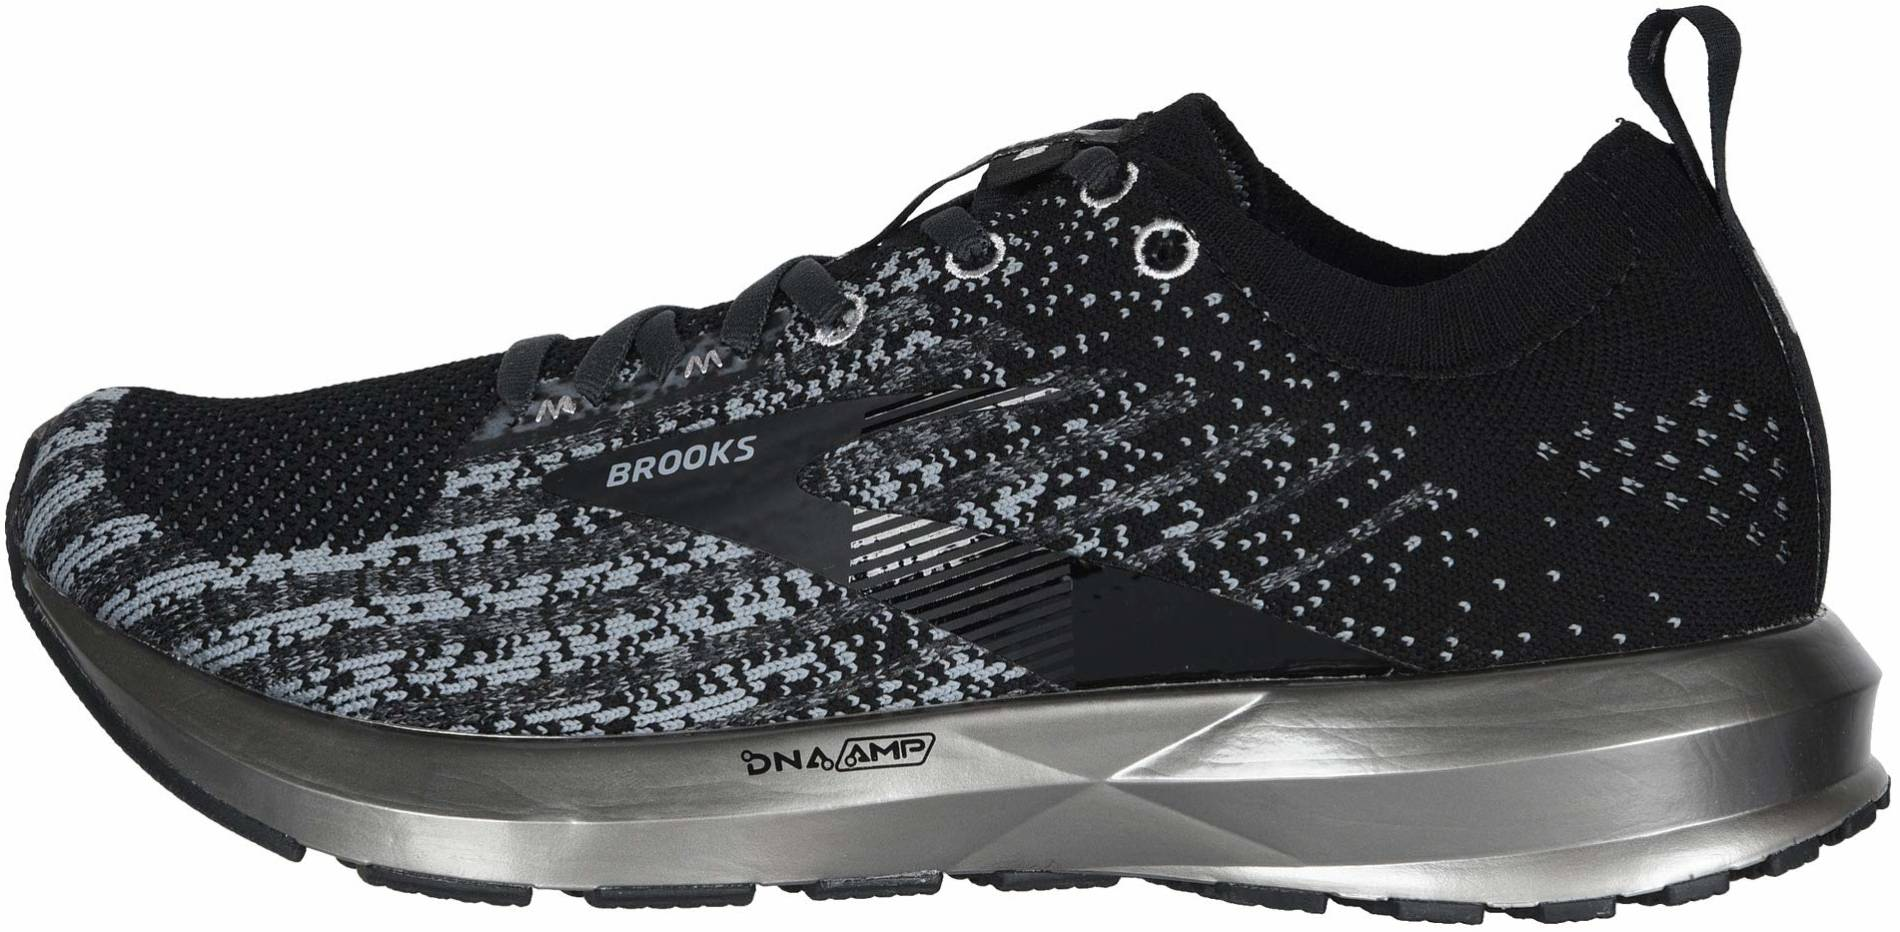 Only $75 + Review of Brooks Levitate 3